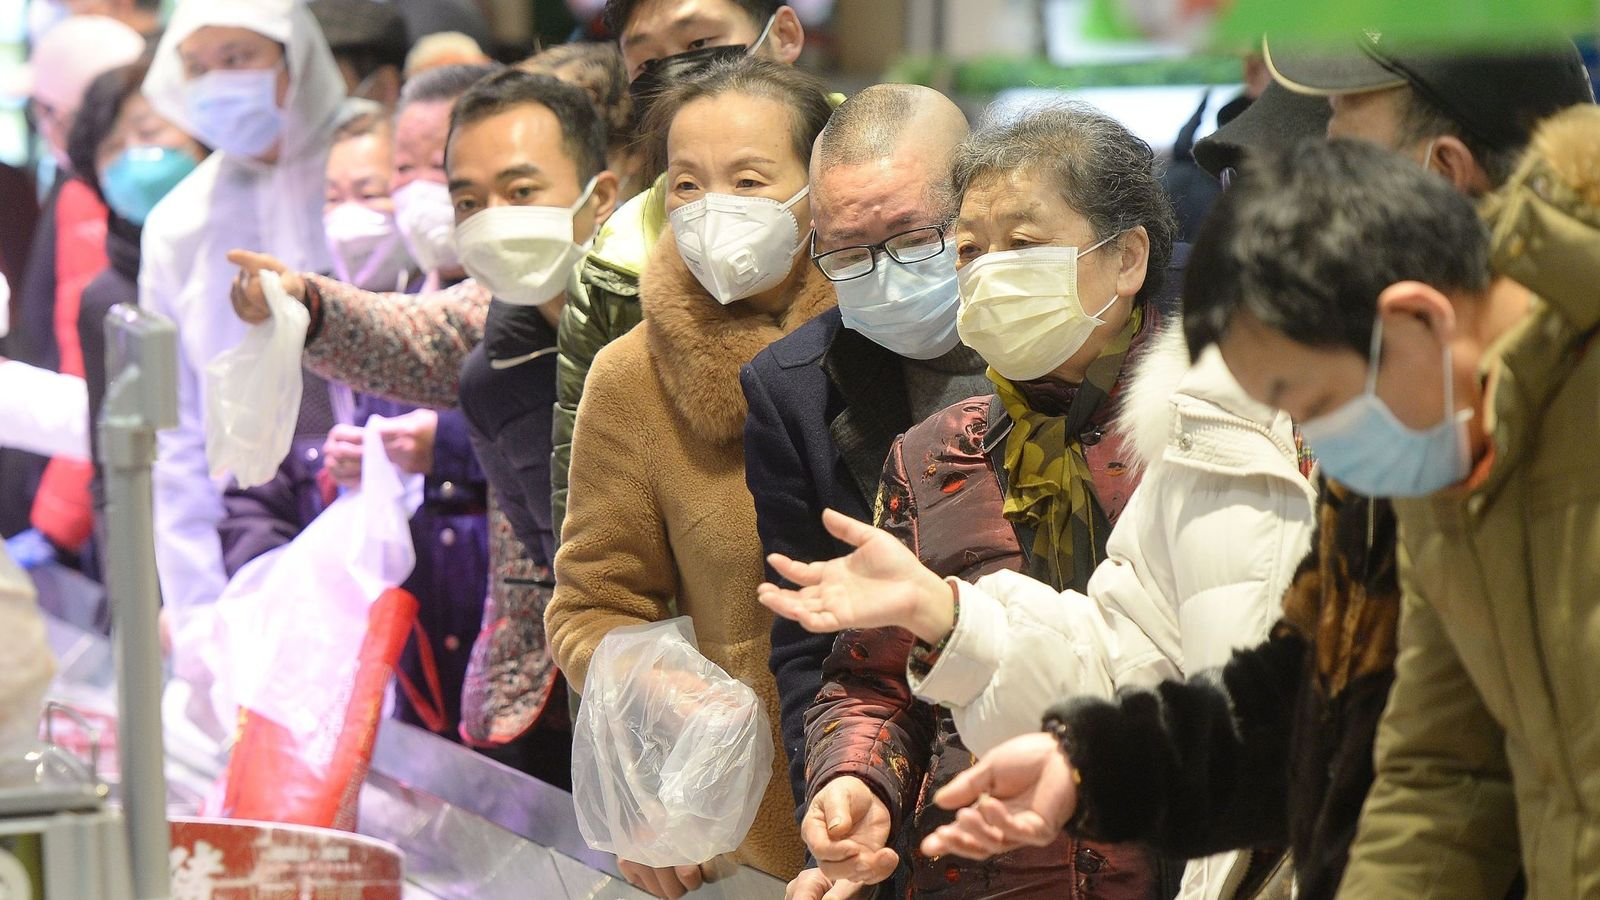 Coronavirus: Number of European cases kept low because of China's 'sacrifice', minister says